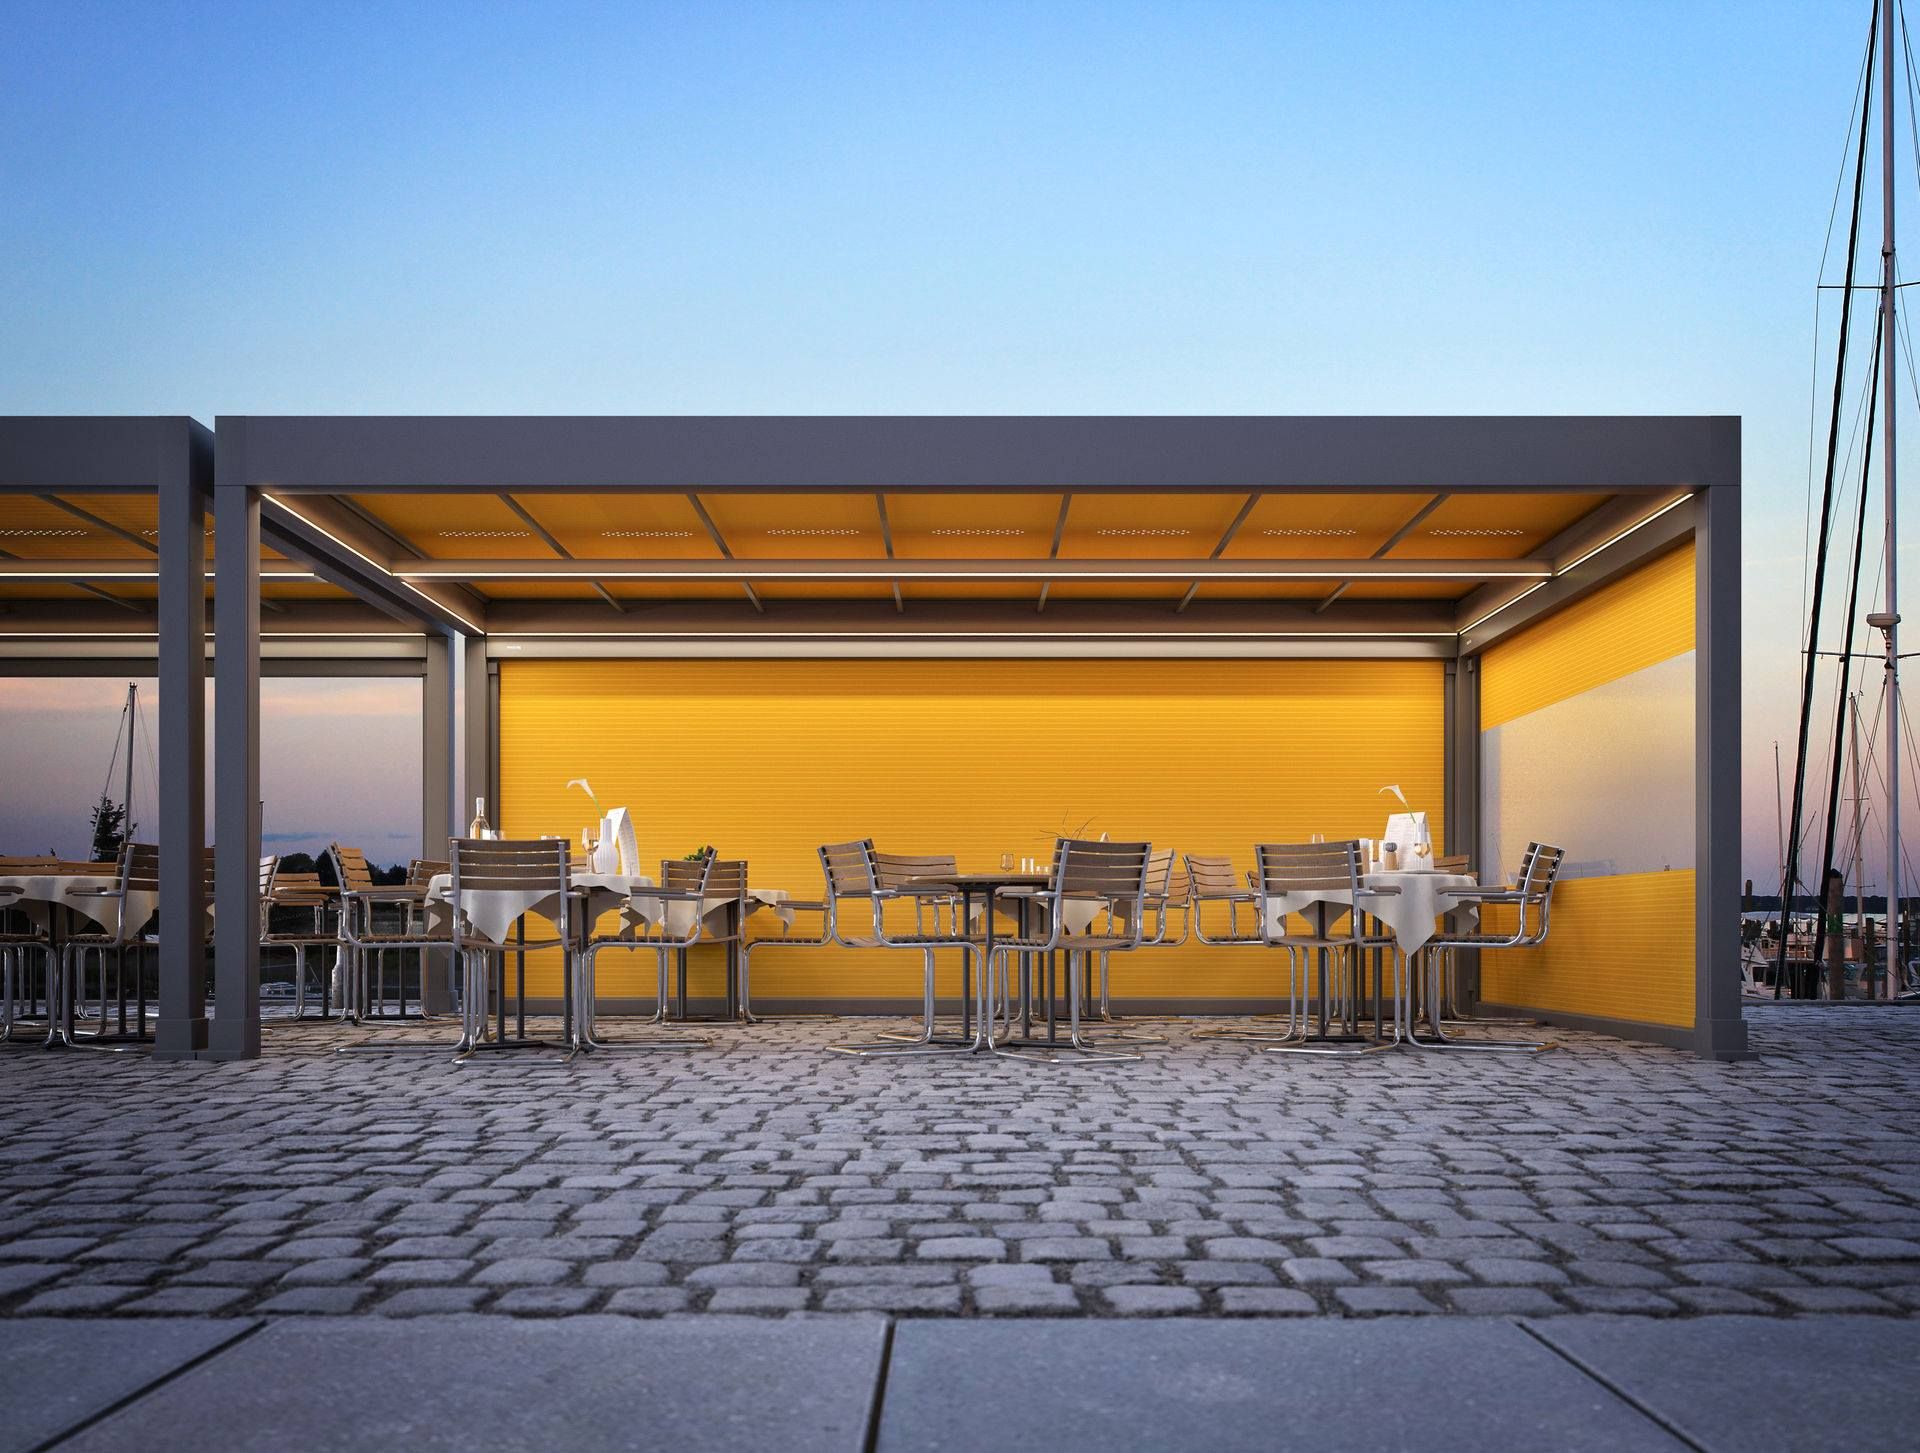 <p>Markilux Awnings Solar Protection Markant – outdoor space extension</p> <p></p> <p>Markant is freestanding retractable awning system for open spaces complementing high-end commercial hospitality outdoor areas allowing customers to spend as much time outdoors without compromising weather protection.</p>